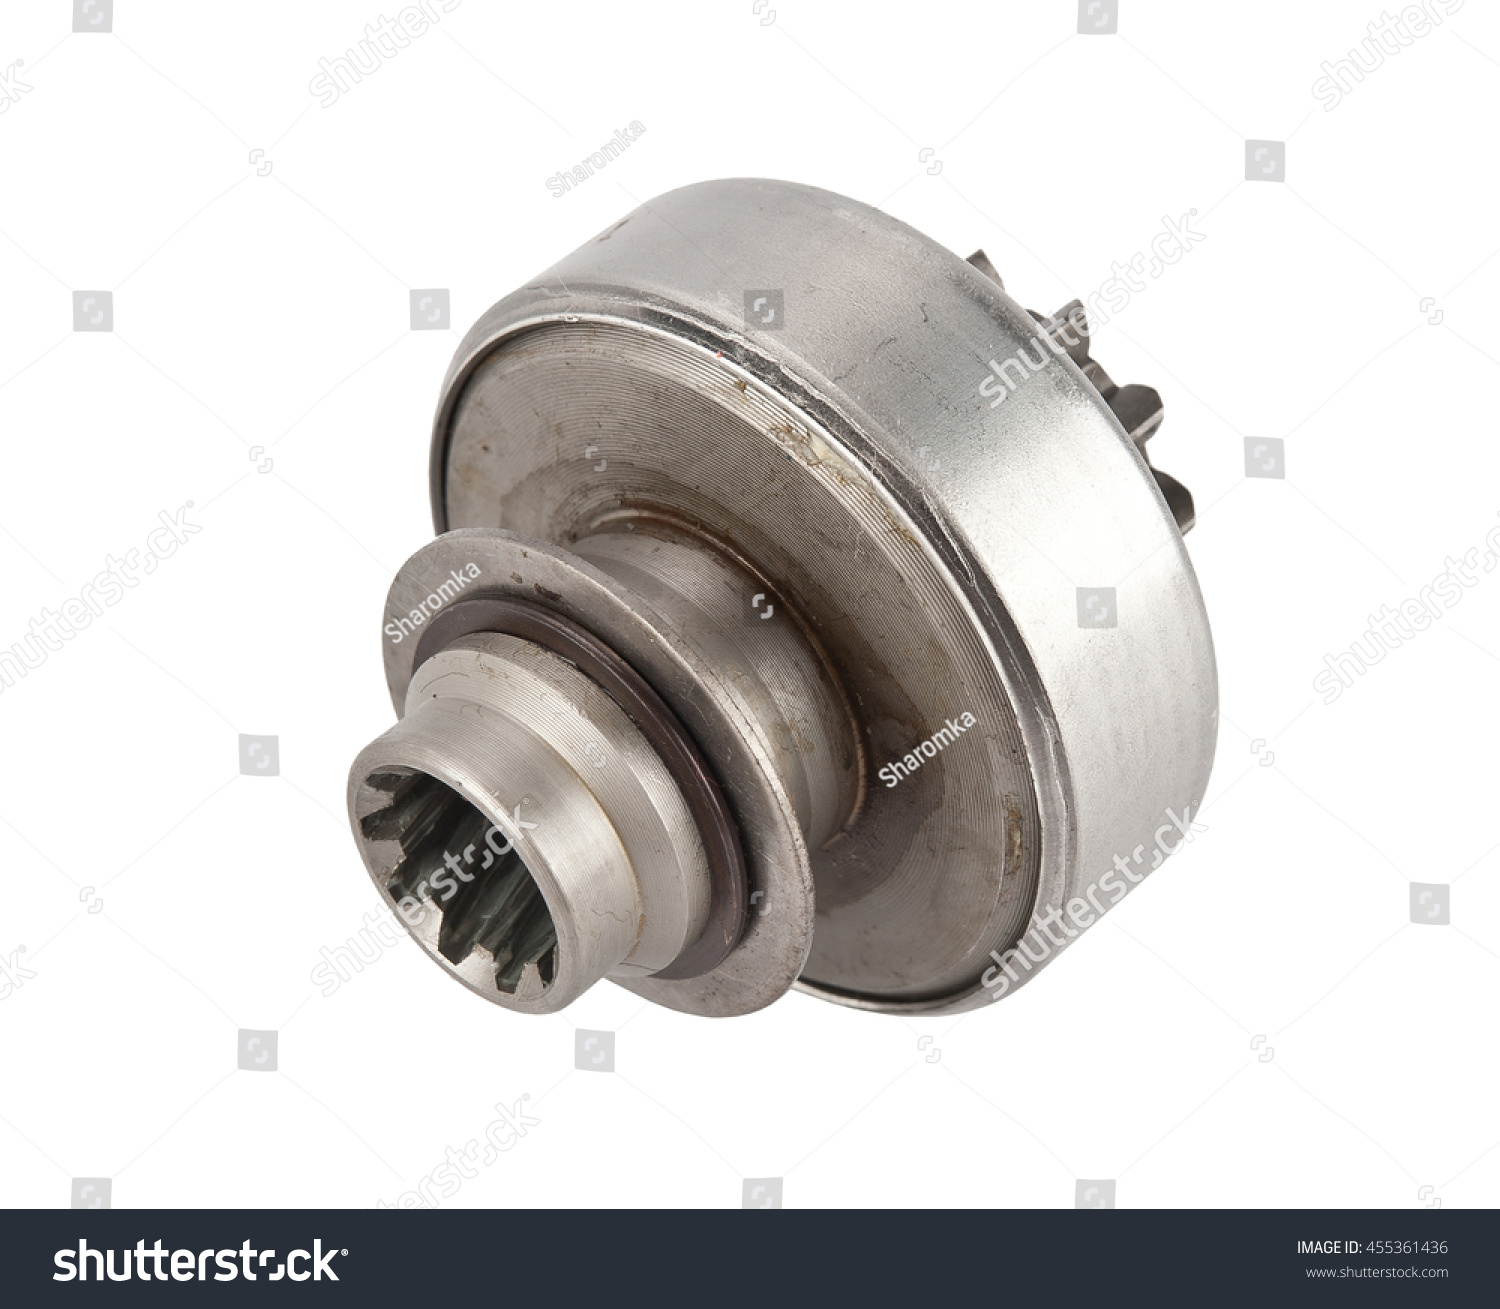 Bendix Drive Starter Detail Automobile Stock Photo Edit Now Fuel Filters For Of Motor